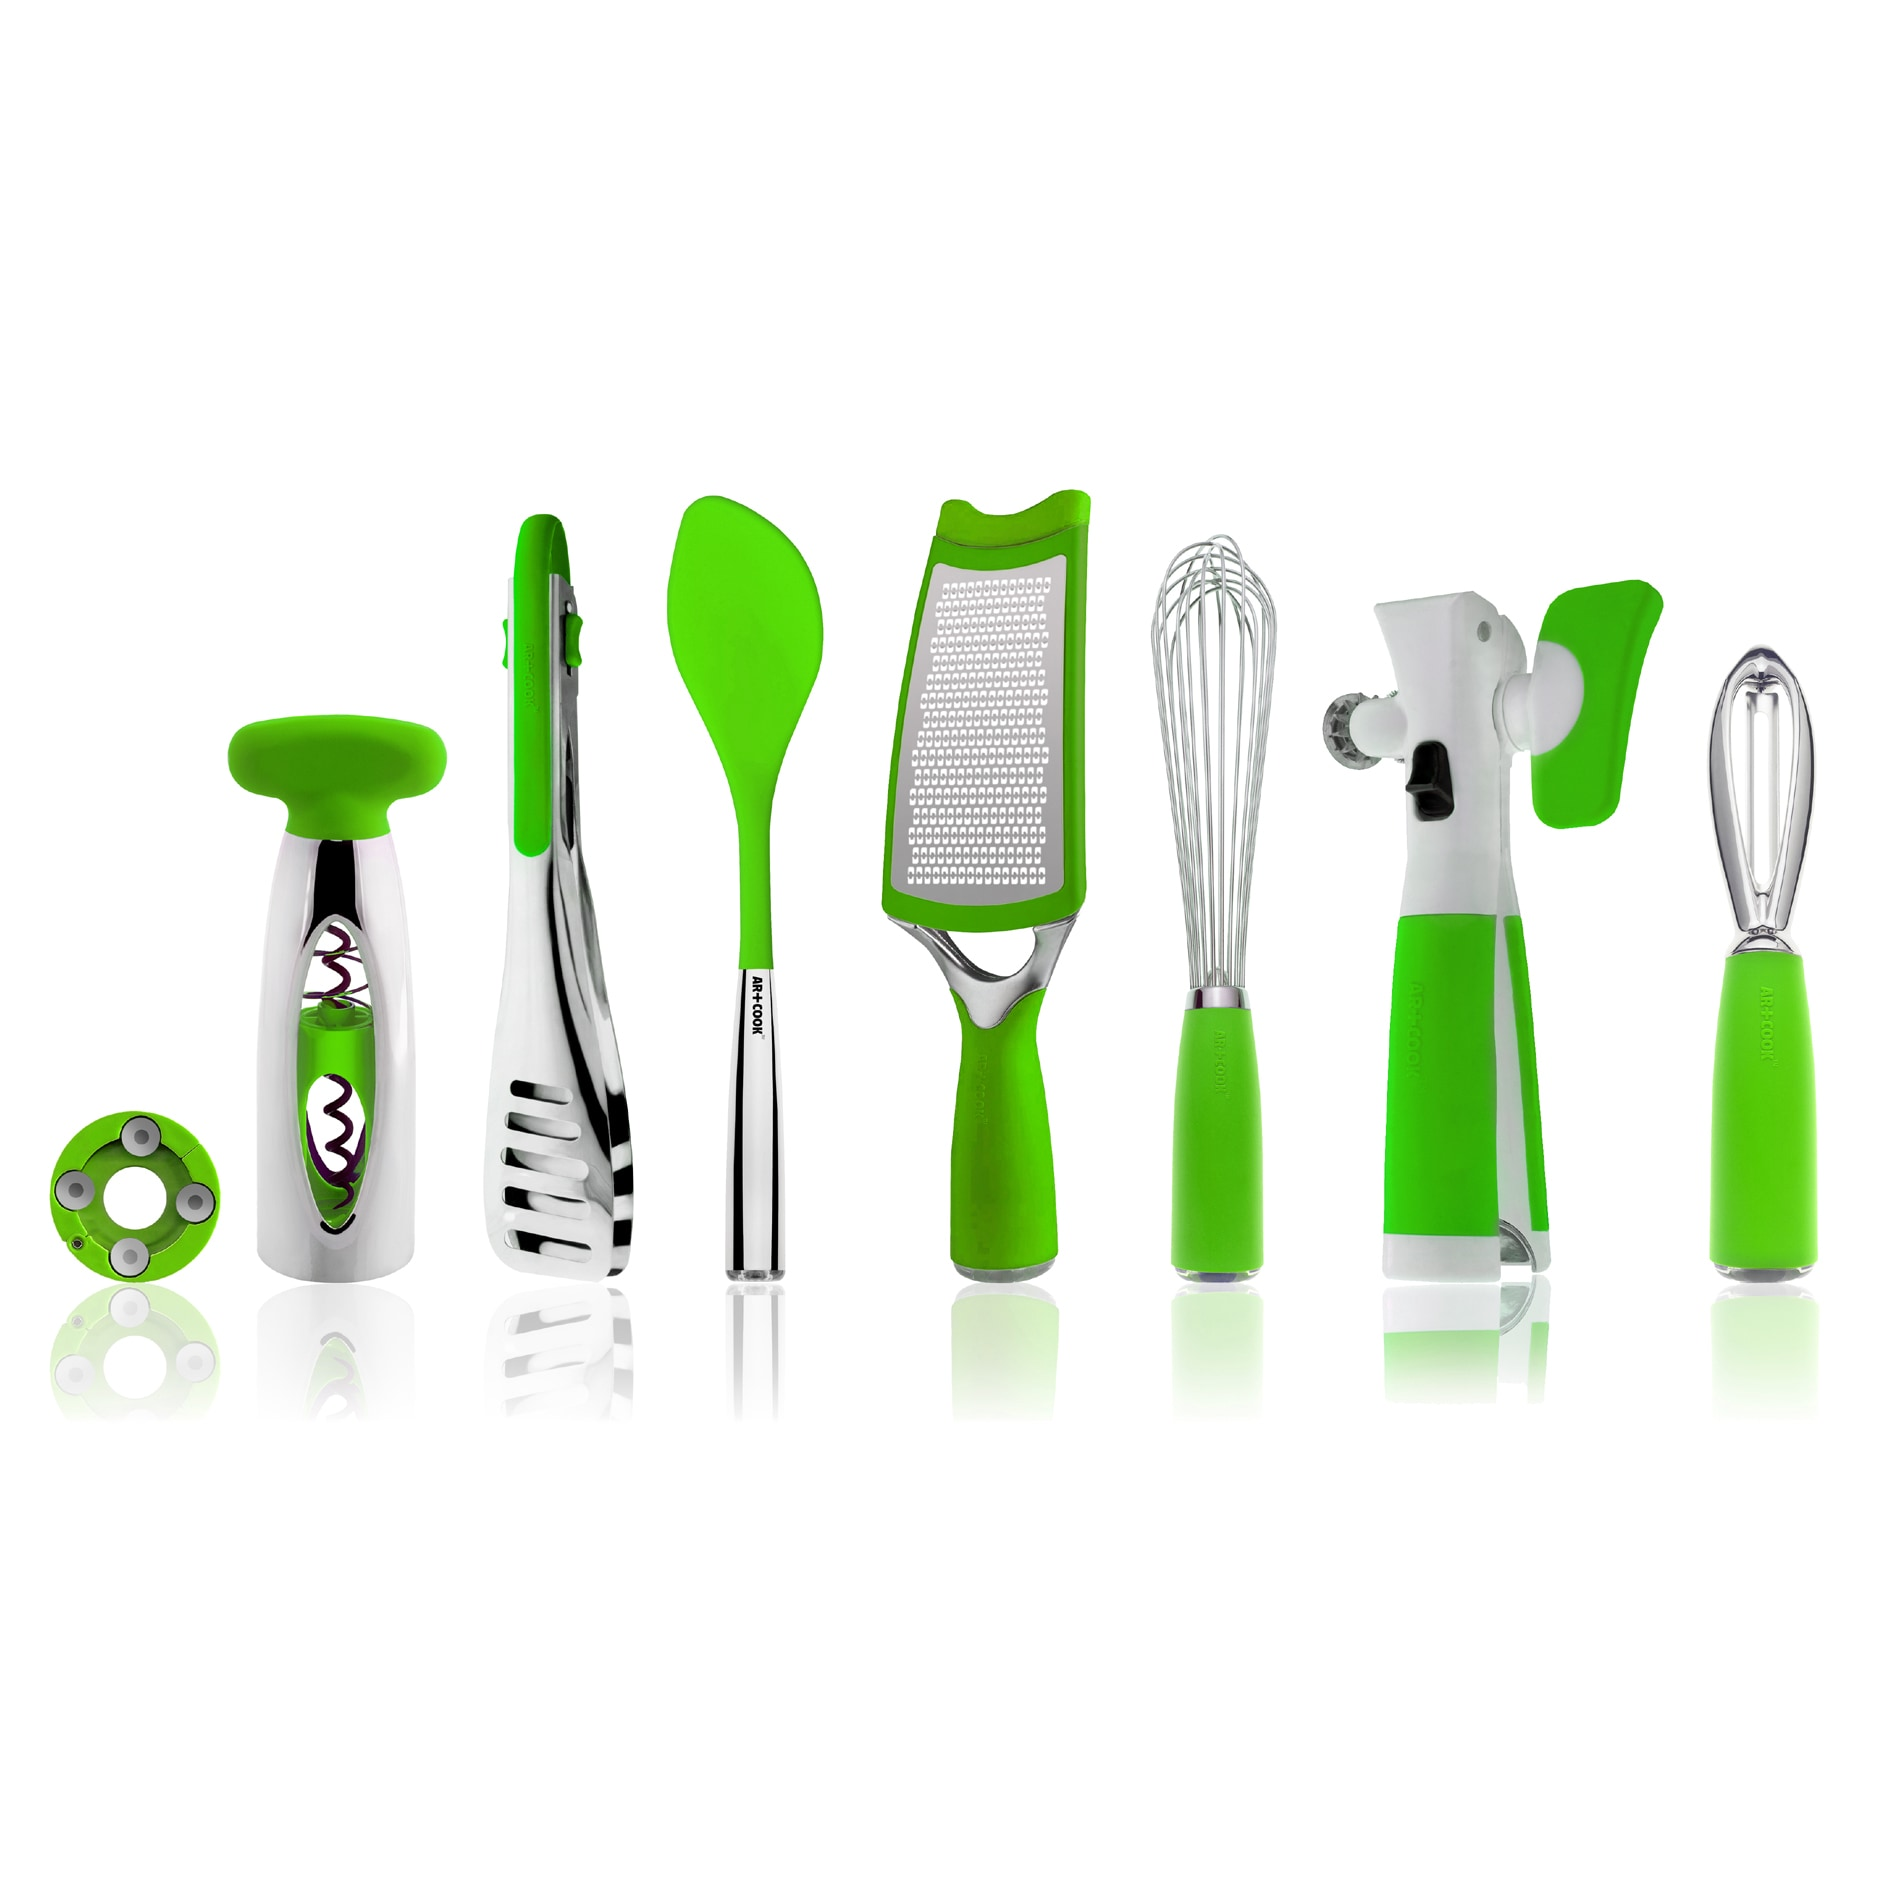 Art and Cook Green 8-piece Kitchen Tool Set